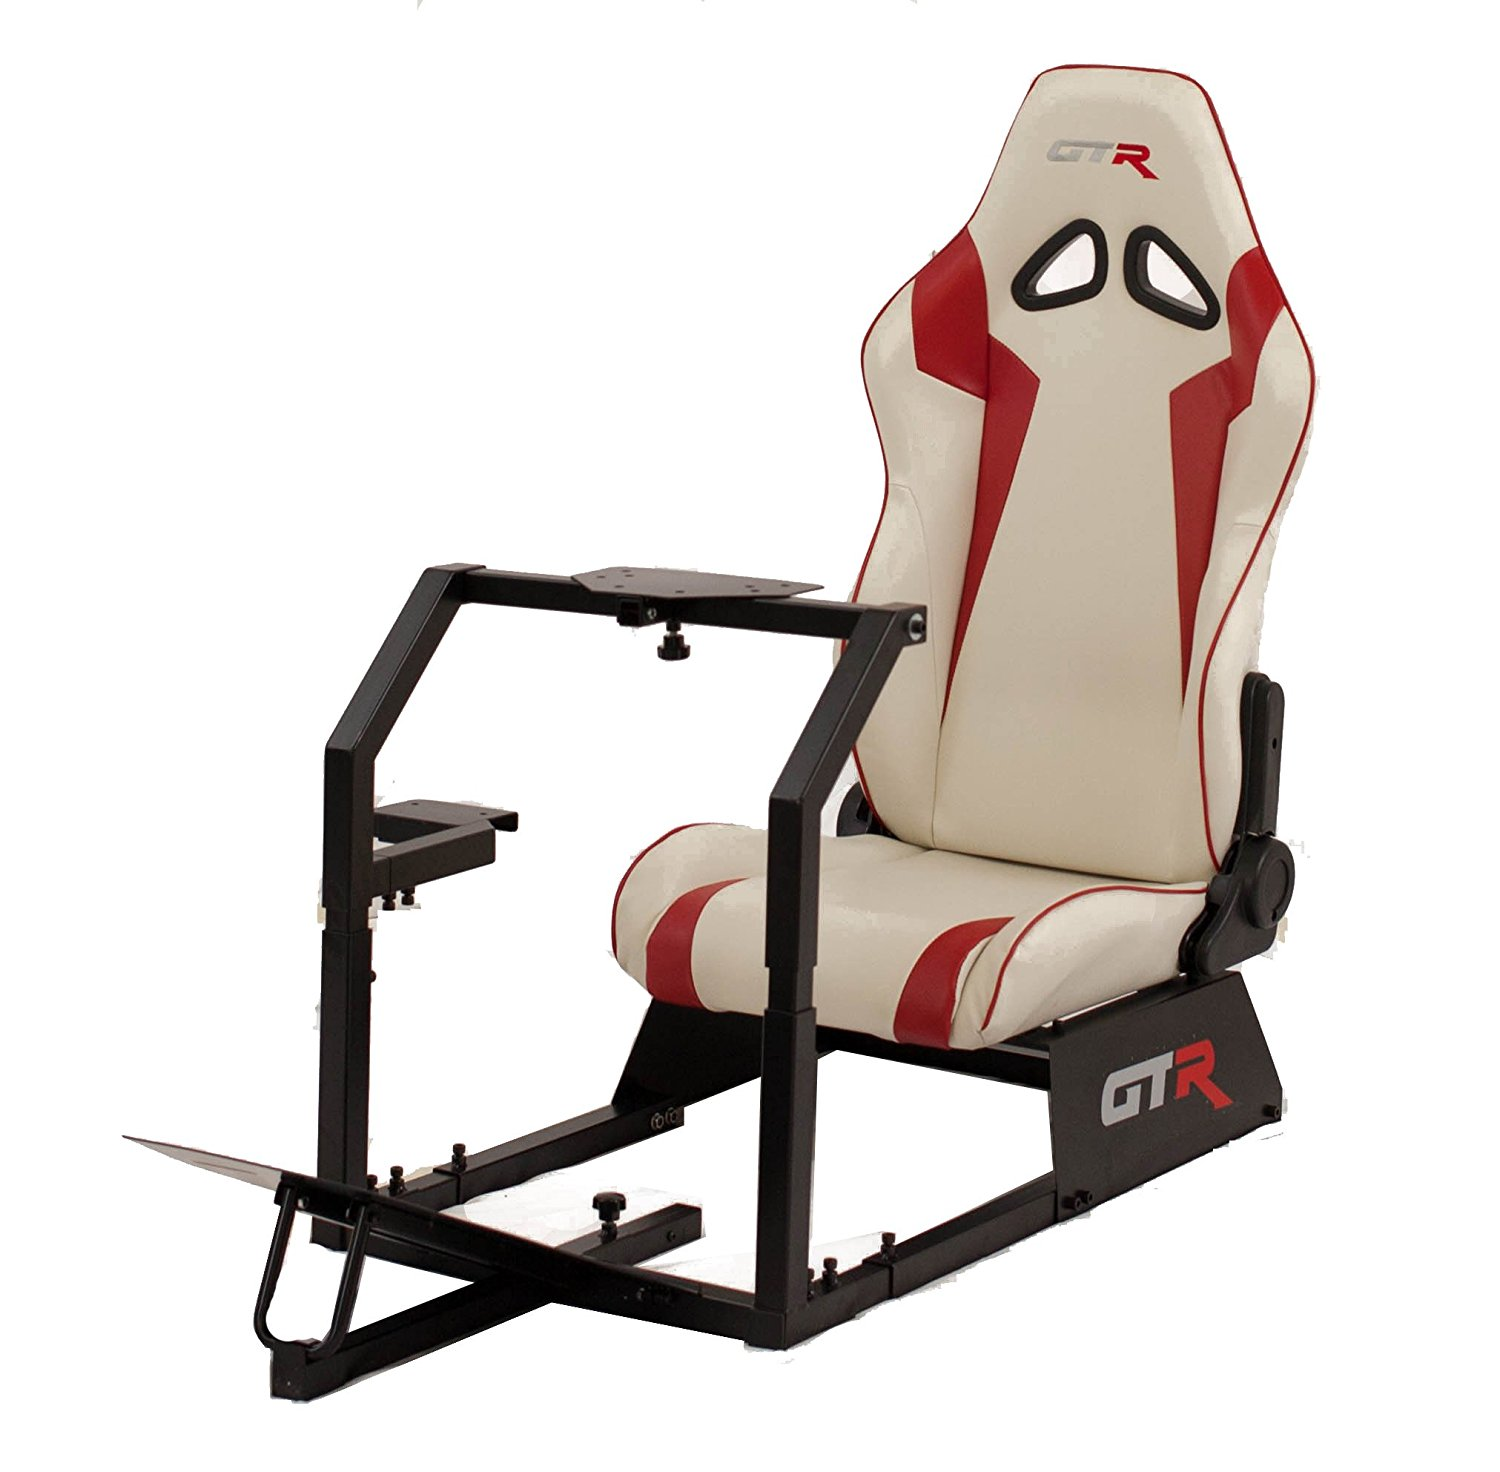 GTR Racing Simulator GTA-BLK-S105LWHTRD GTA 2017 Model Black Frame with White/Red Real Racing Seat, Driving Simulator Cockpit Gaming Chair with Gear Shifter Mount